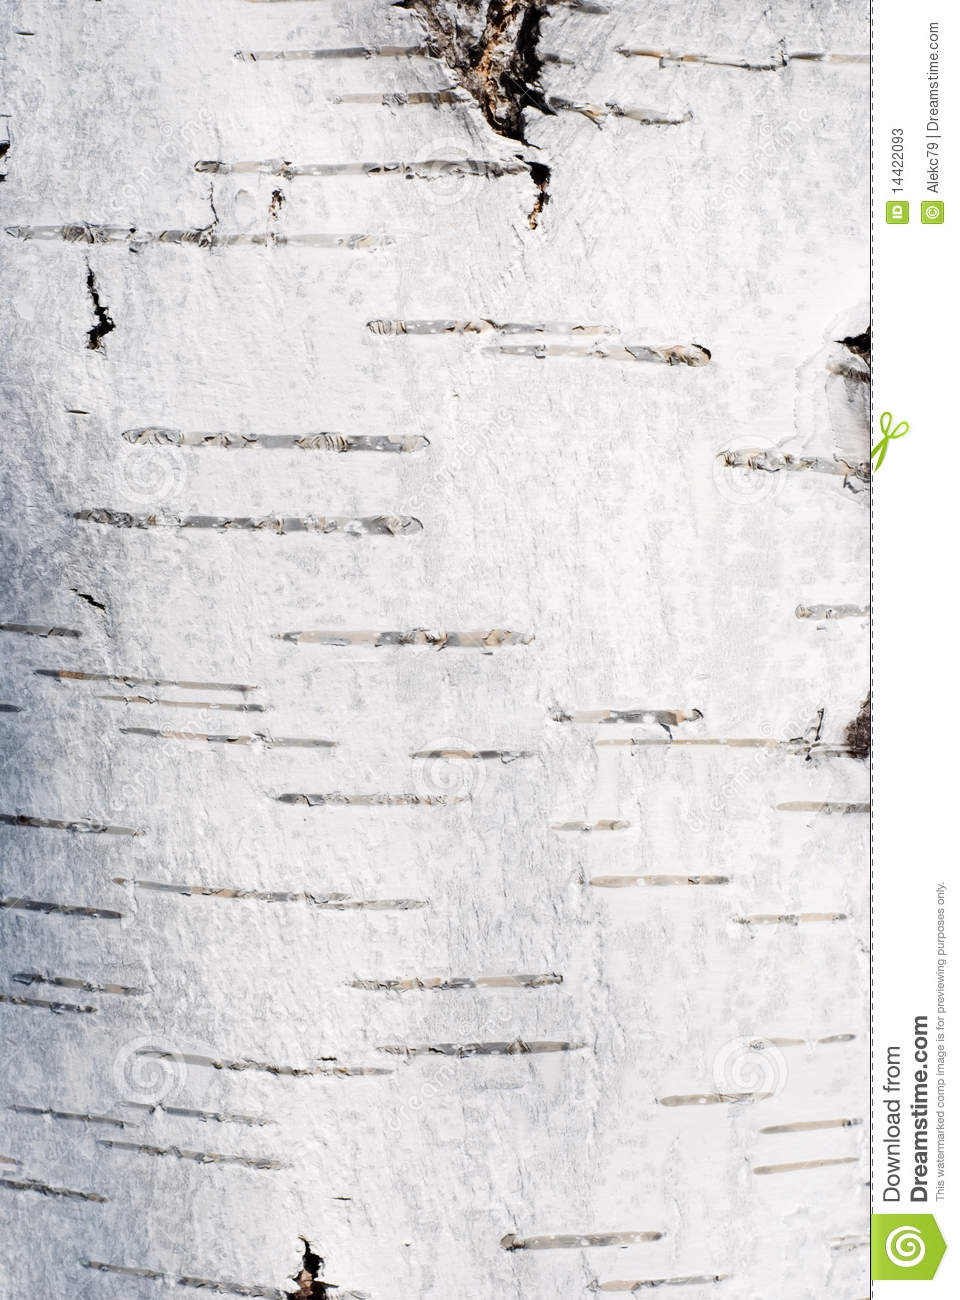 White Birch Texture Stock Photos - Image: 14422093